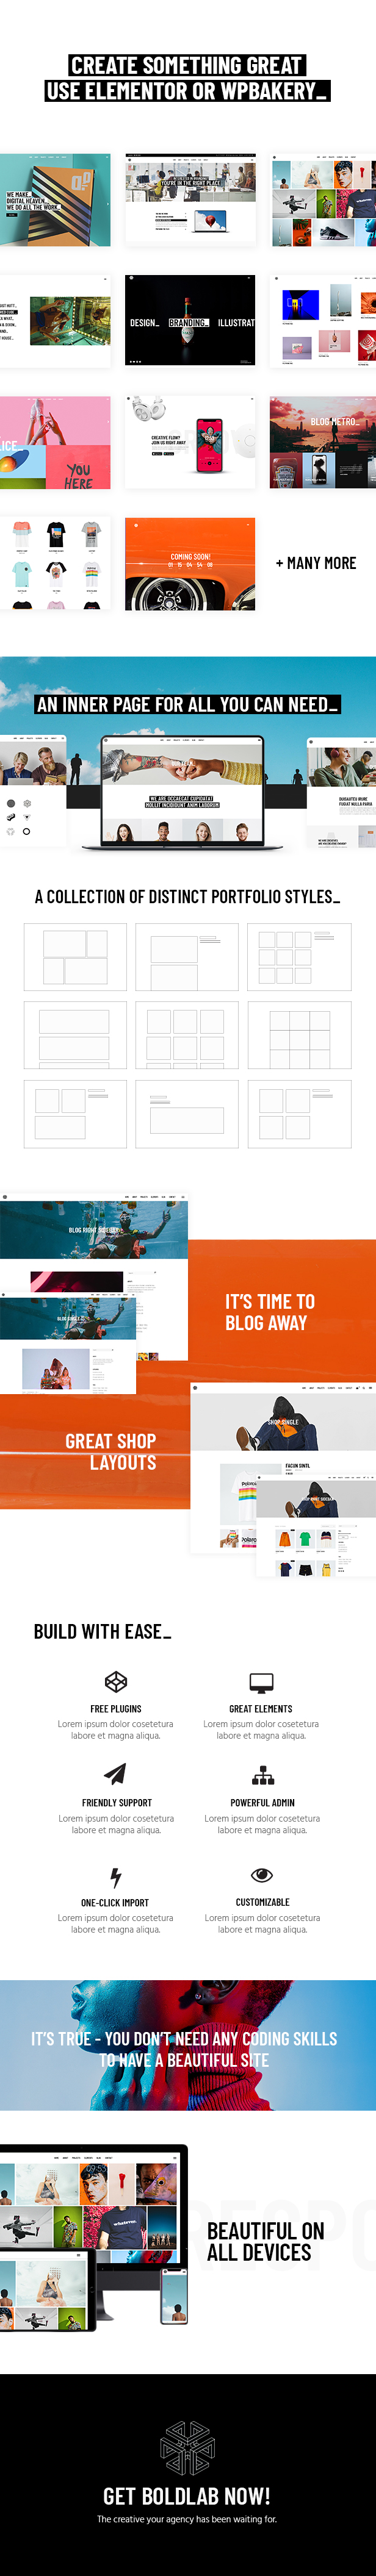 Boldlab - Creative Agency Theme - 1